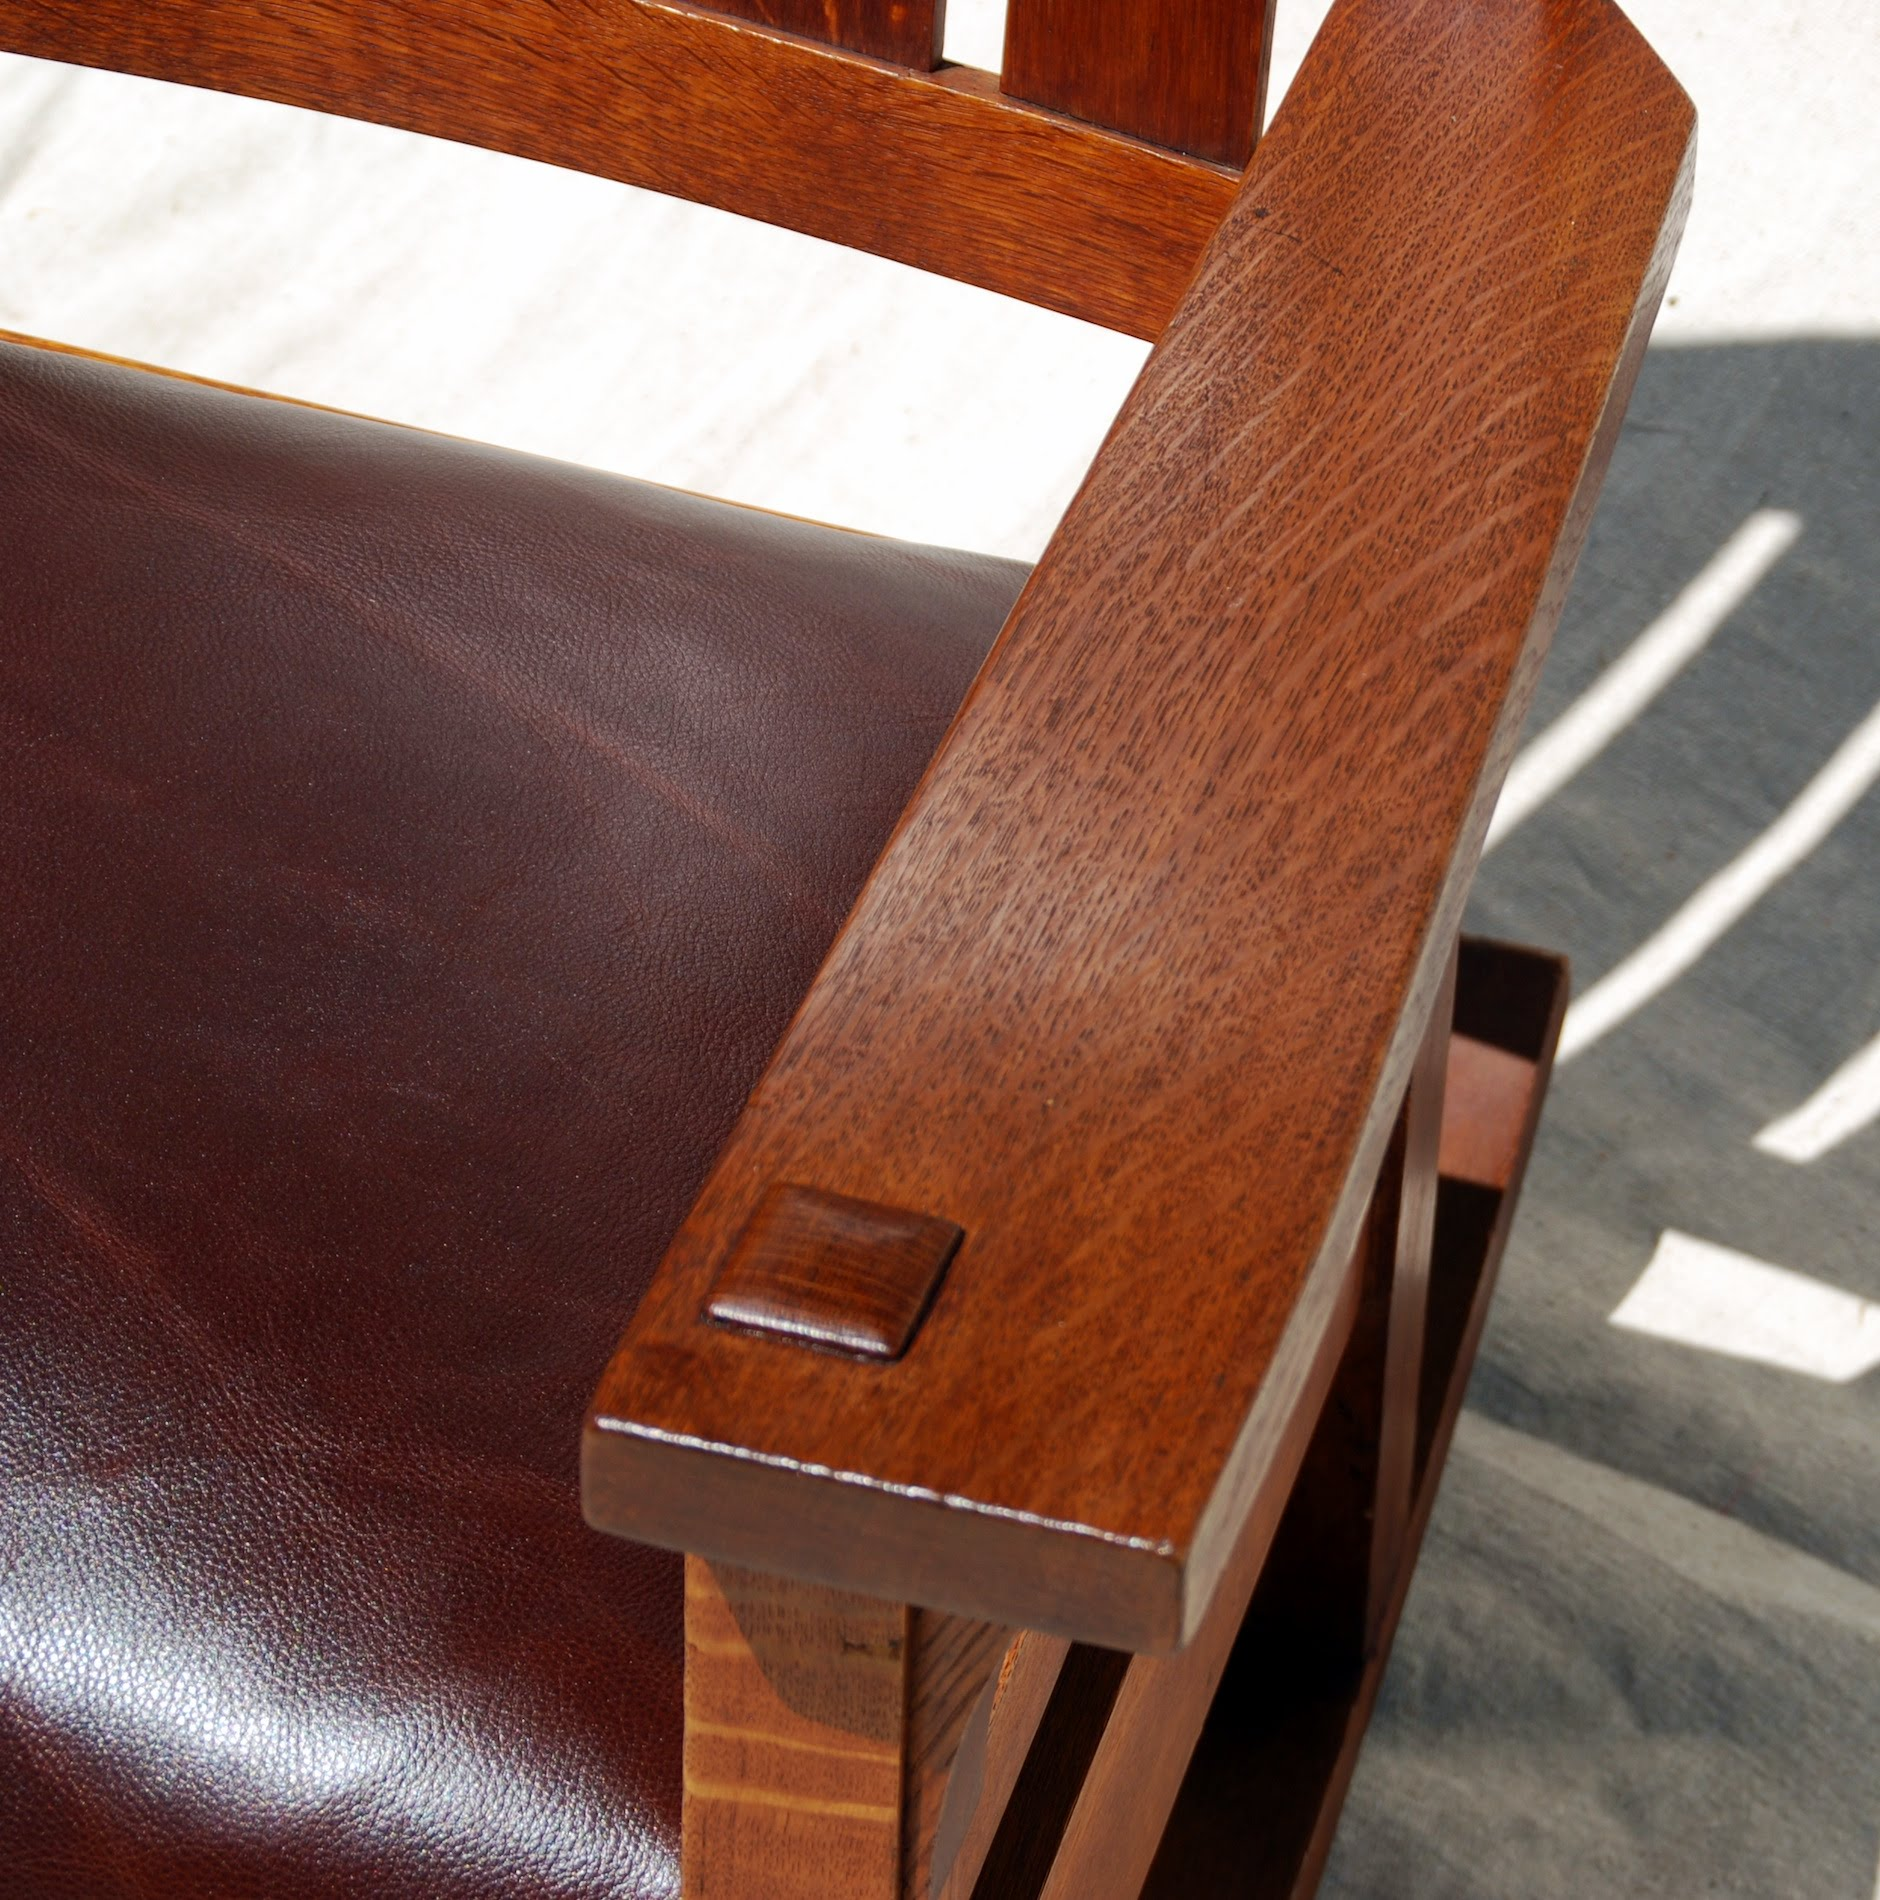 Voorhees Craftsman Mission Oak Furniture Early Gustav Stickley Rocking Chair Original Finish Signed Large Early Red Decal Stickley In Rectangle 1901 To 1903